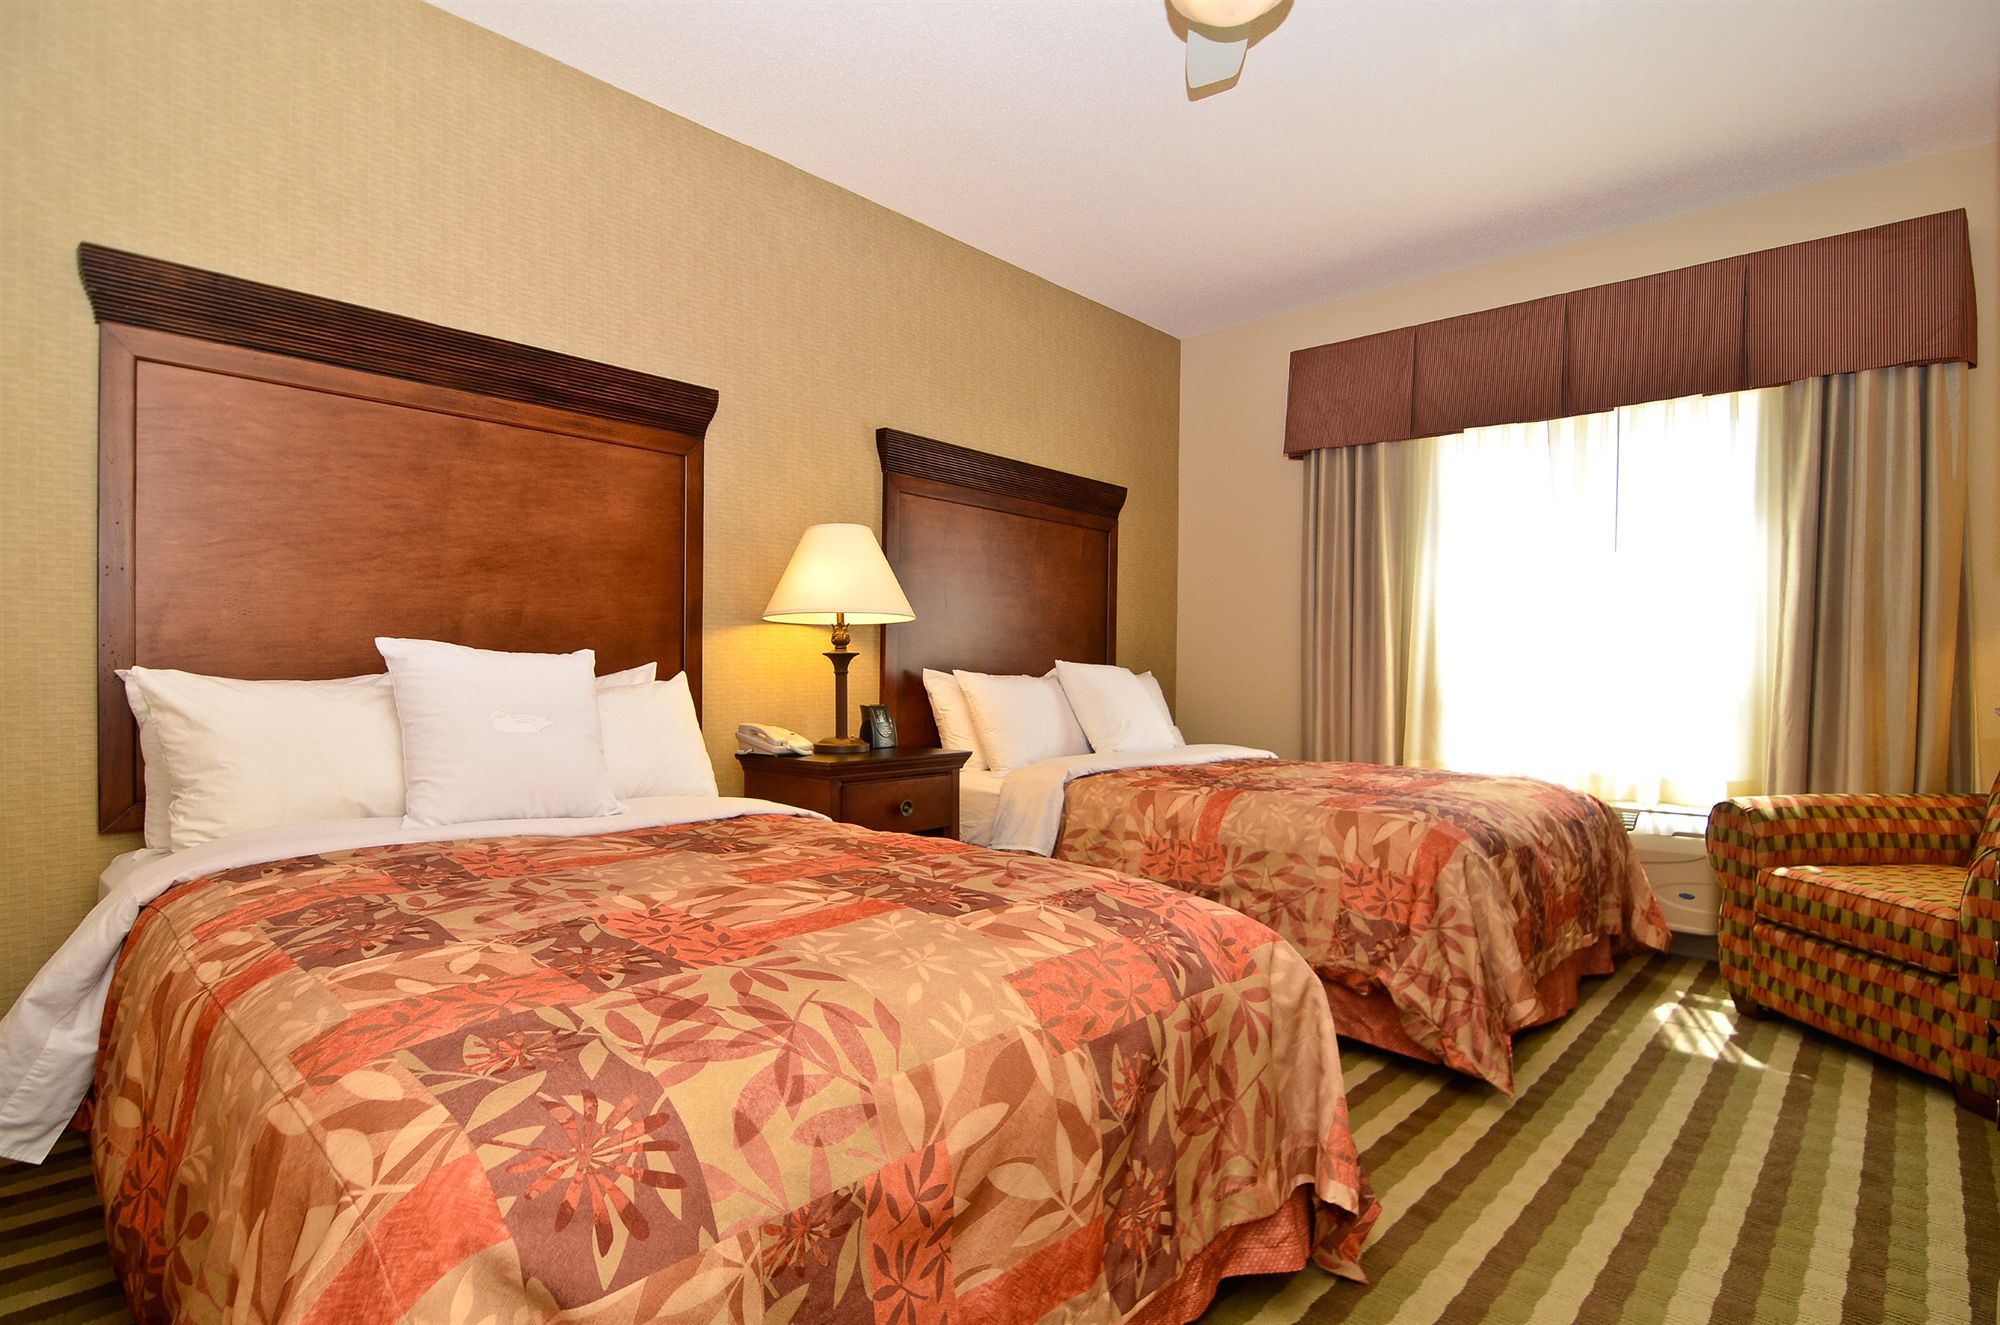 Homewood Suites Dover in Dover, NH